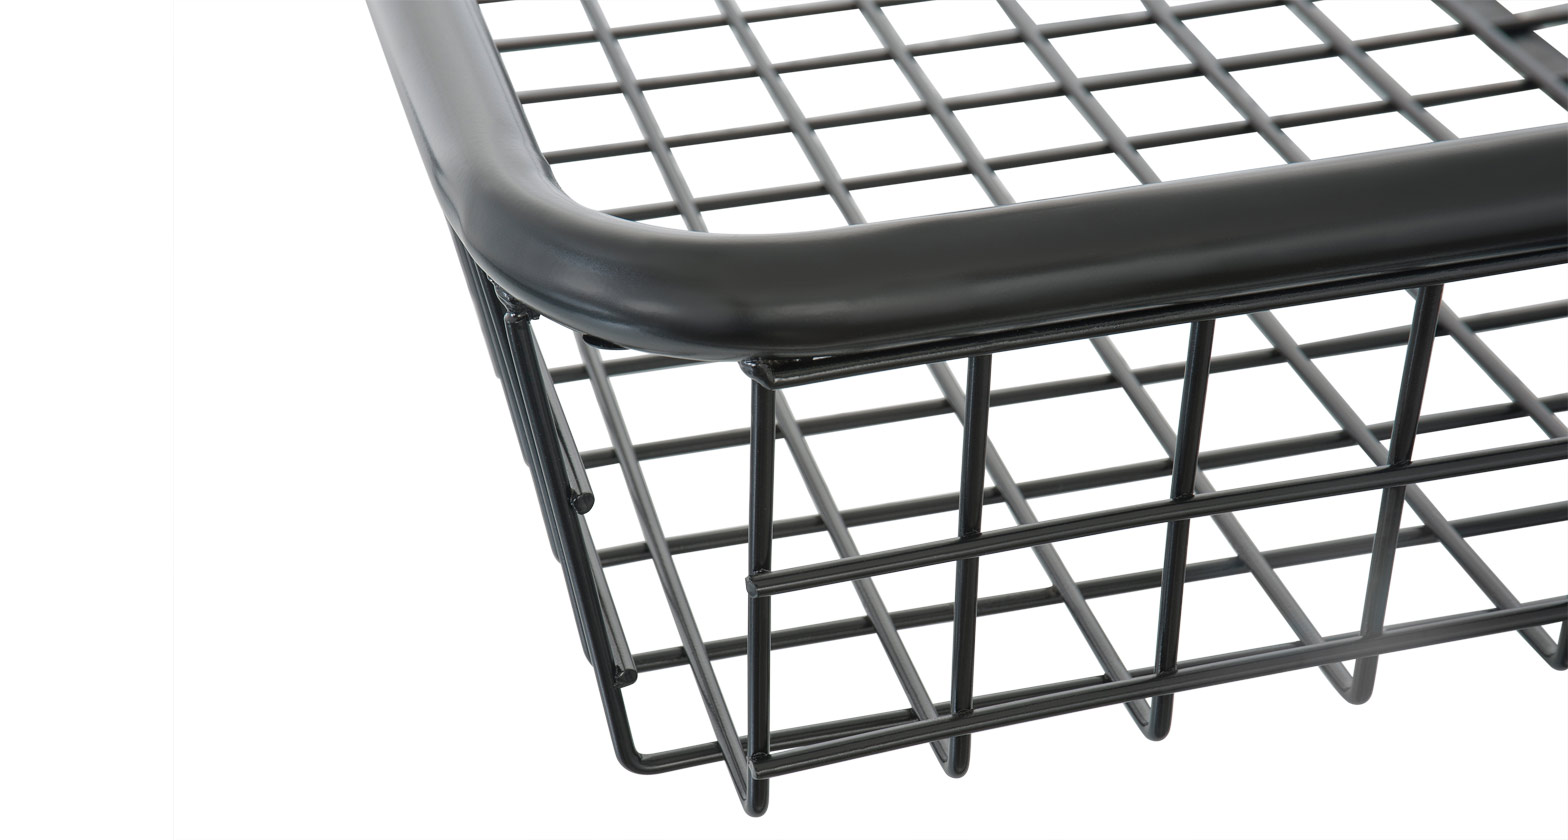 steel mesh basket xxl rlbxxl rhino rack. Black Bedroom Furniture Sets. Home Design Ideas